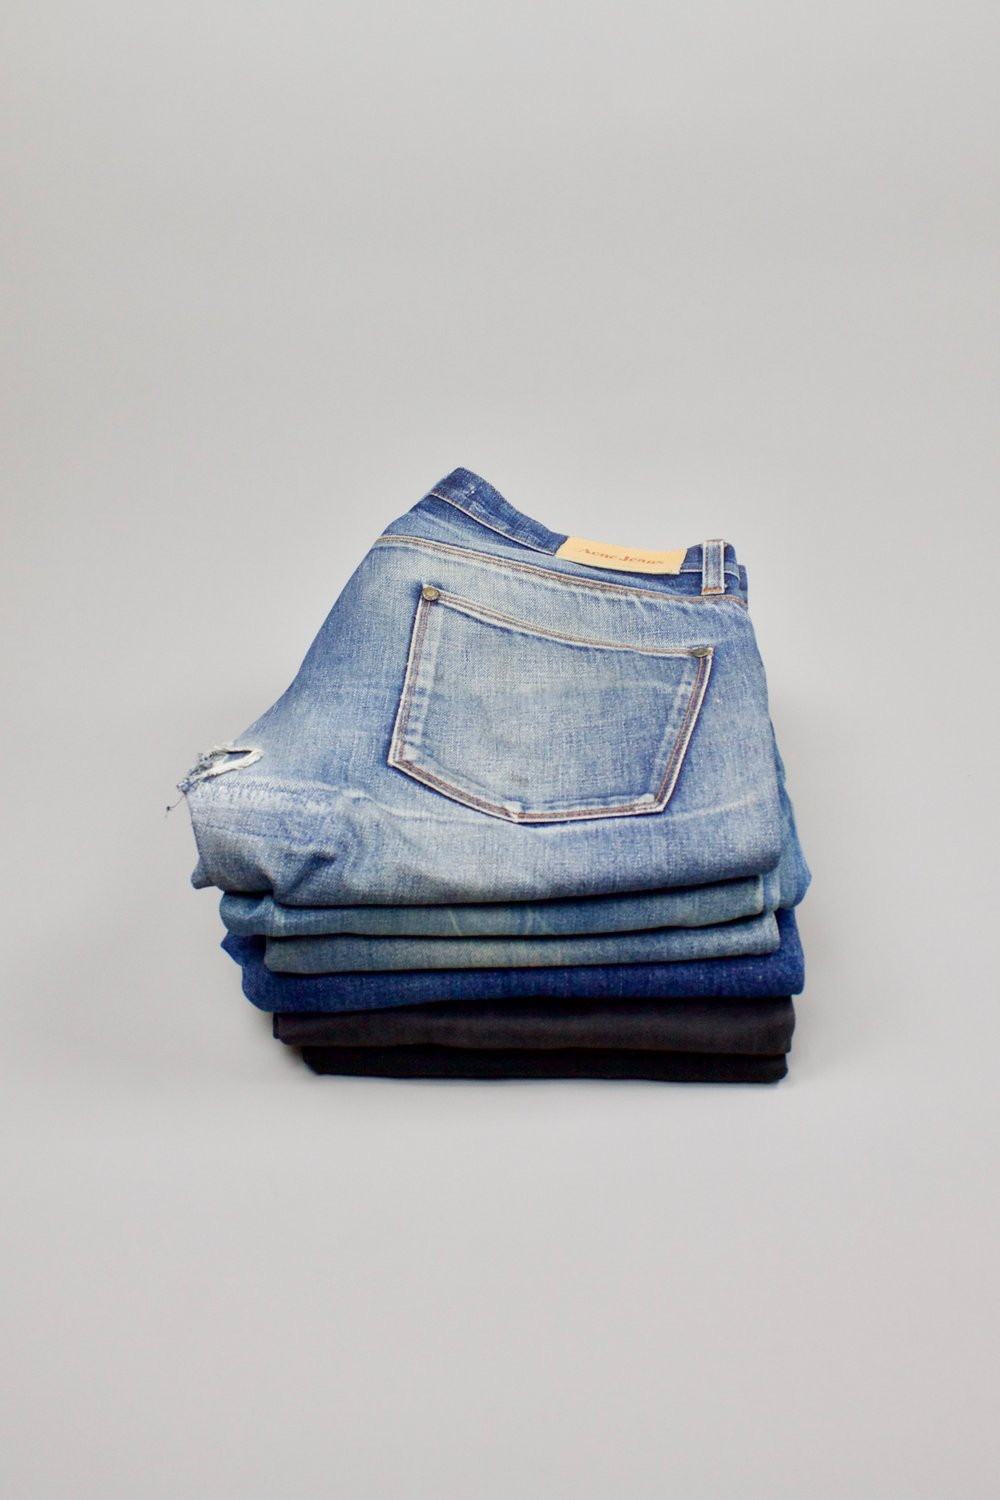 Denim variety   Strong and durable fabric. What if this material was used for … a stool?